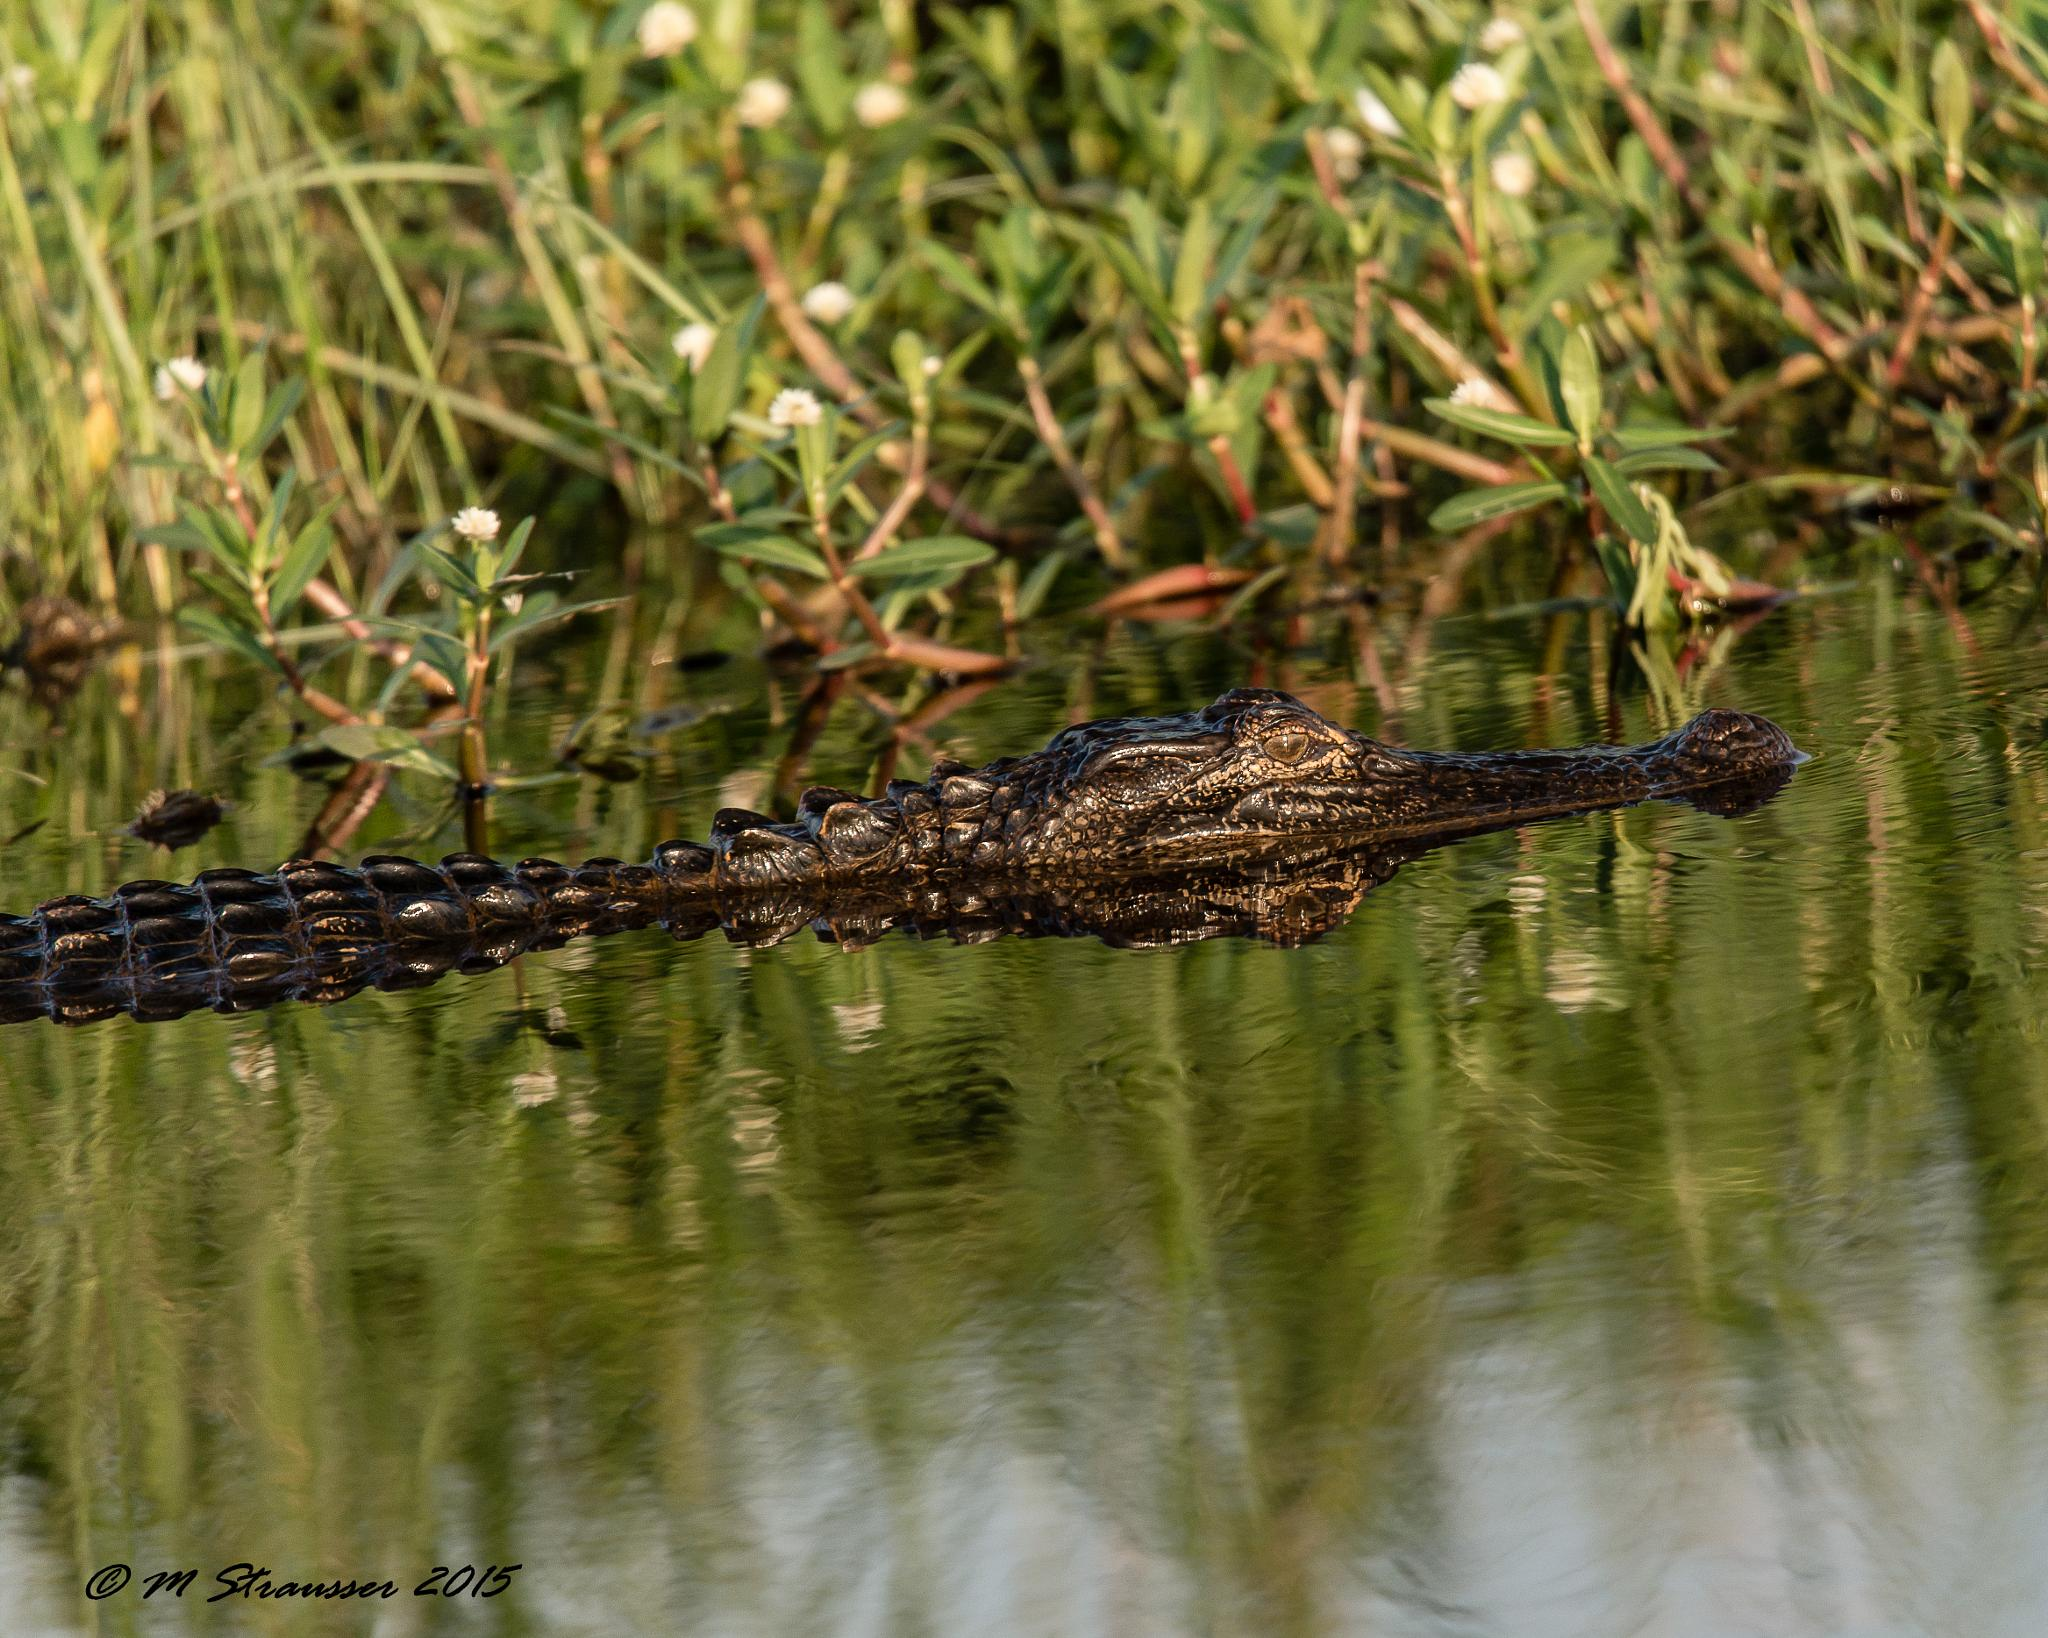 gator 3 by MStrausser of the iMage Shack